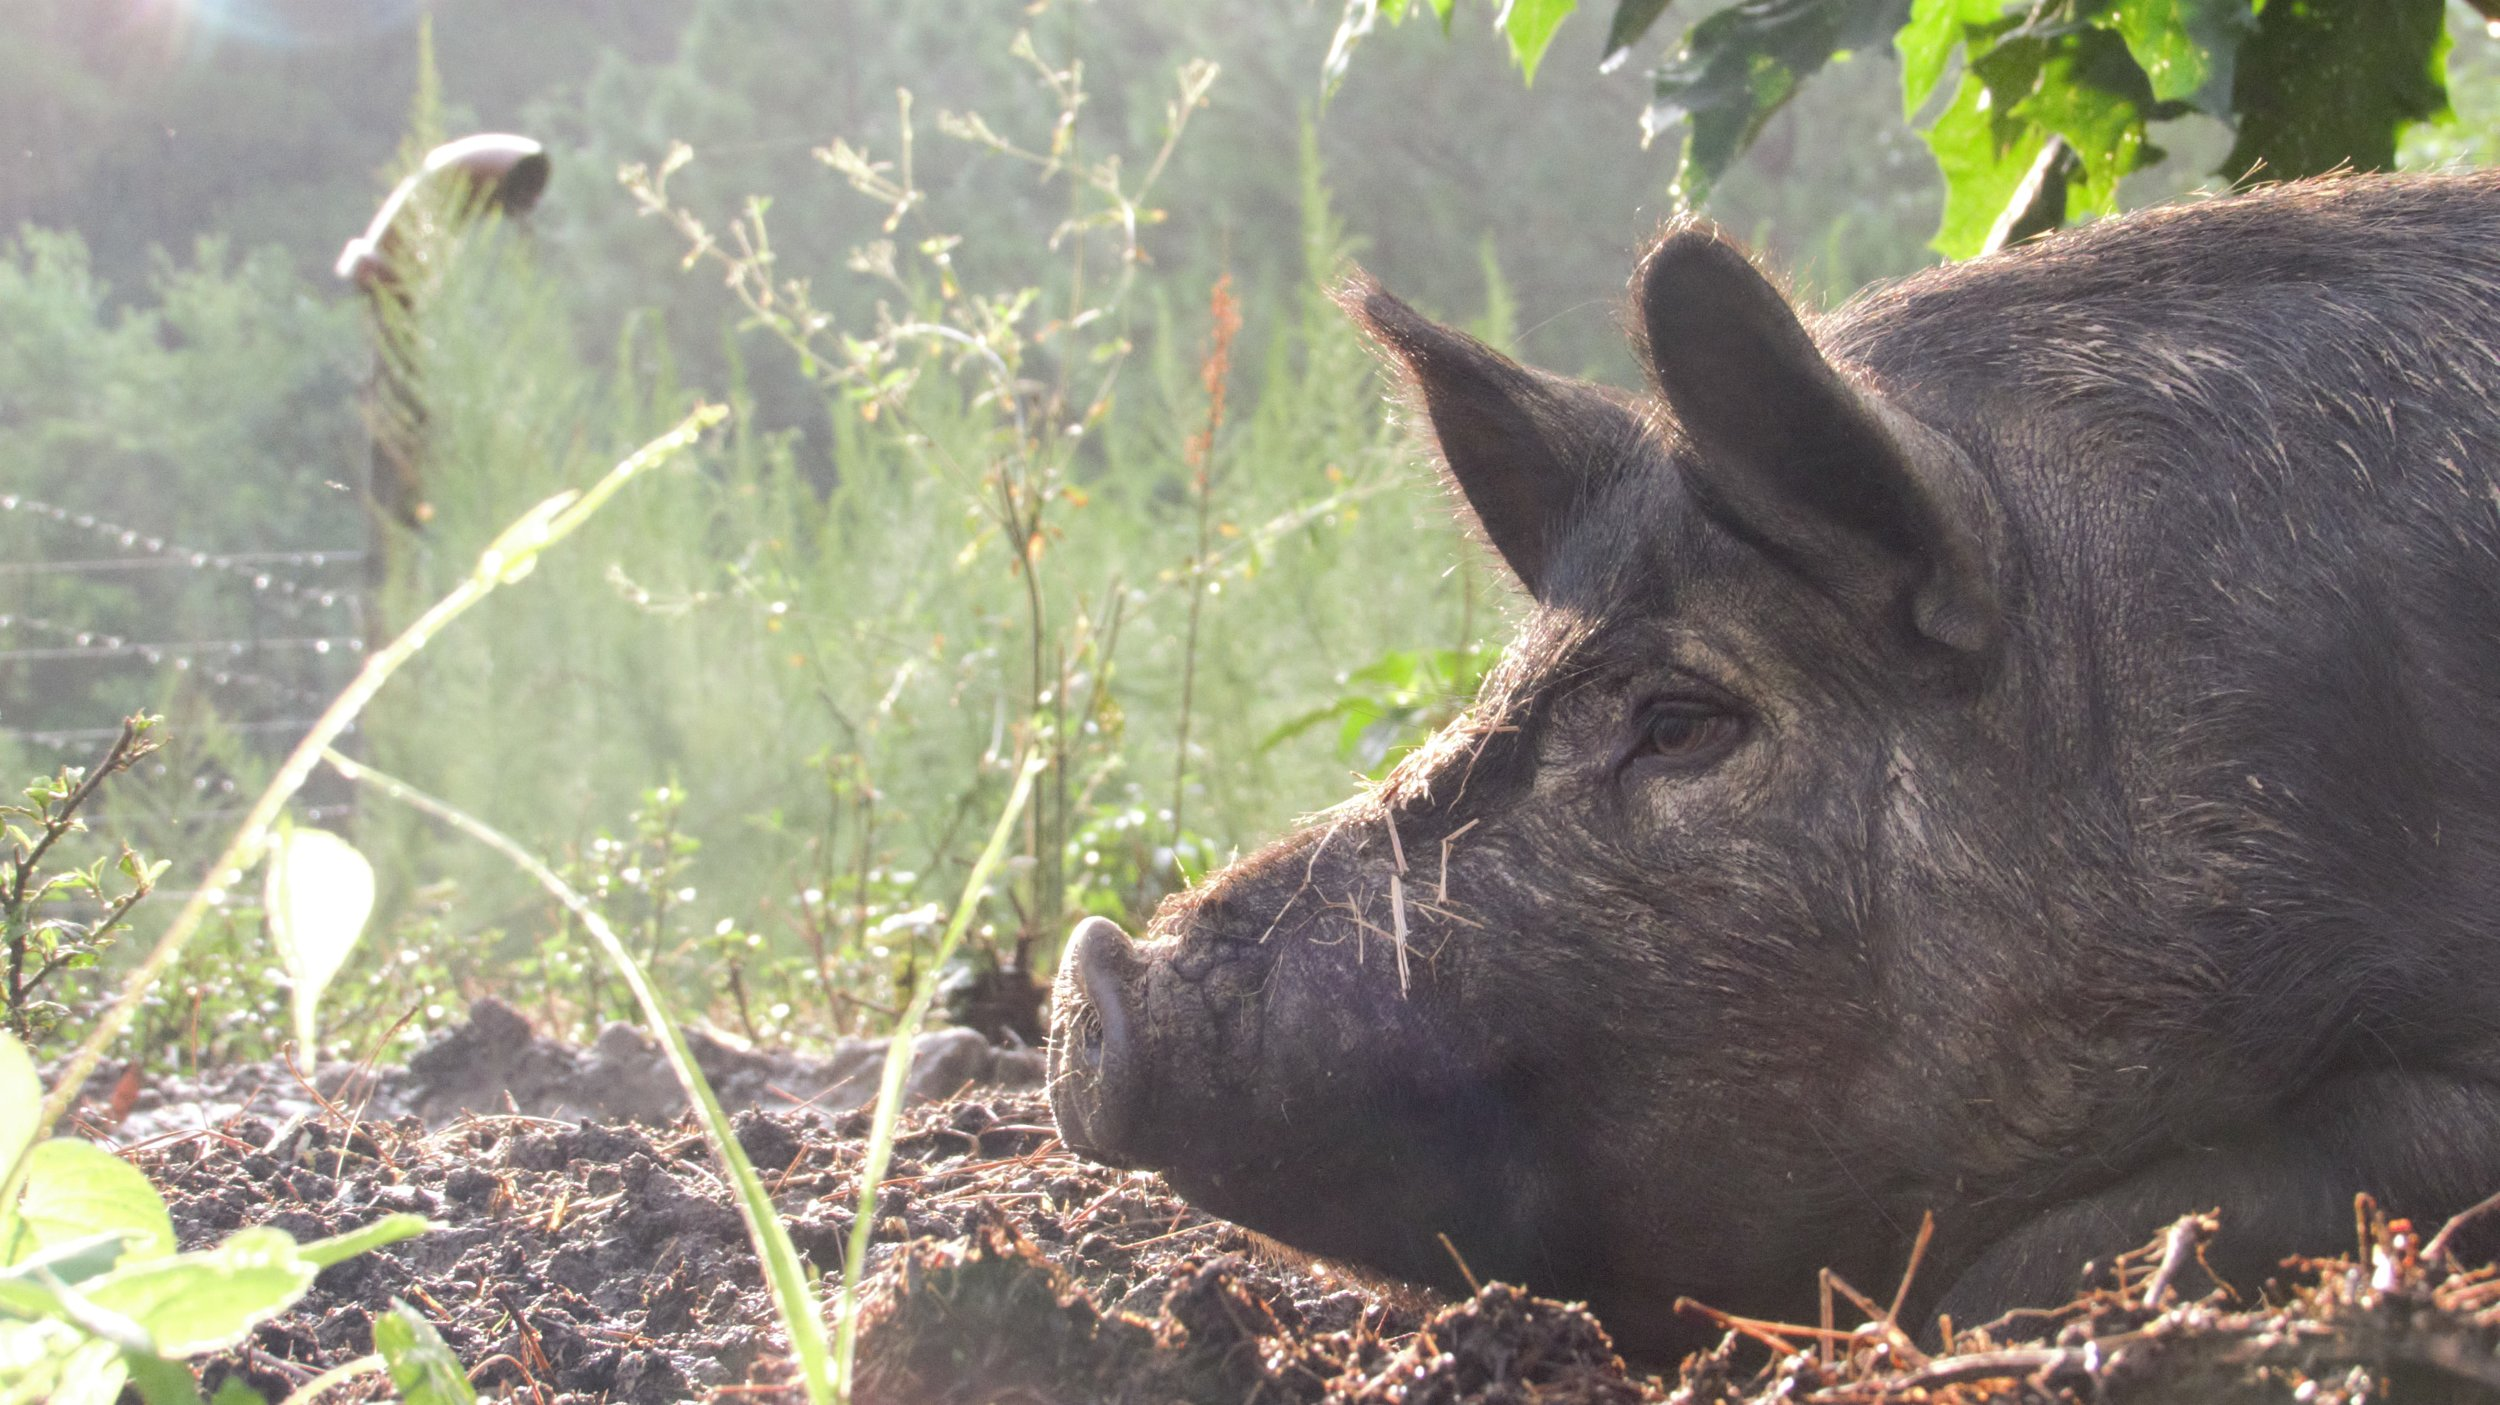 Livestock - We raise chickens and registered American Guinea Hogs on our farm in Bear Creek, North Carolina. We believe in raising things the right way; on fresh forage, living the way they were intended to.